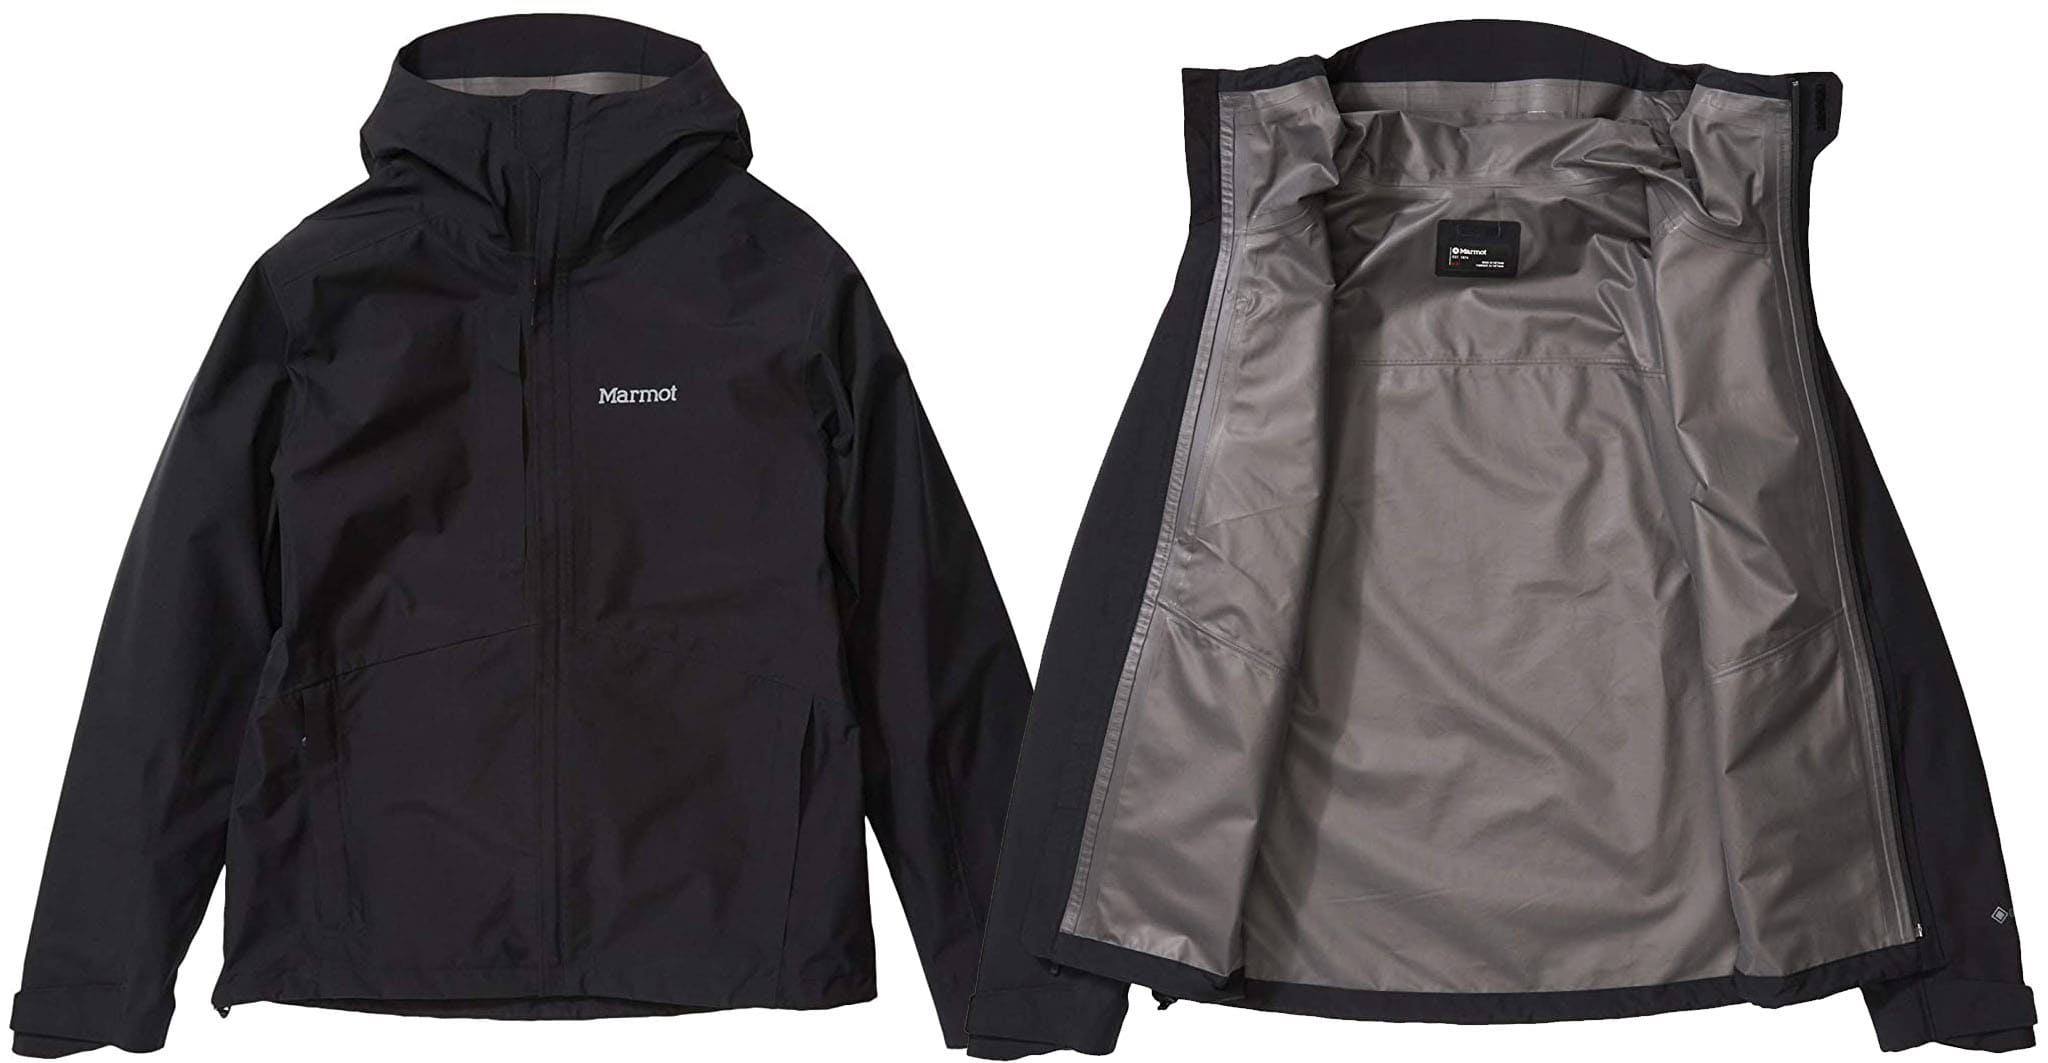 The Marmot Minimalist jacket is made from Gore-Tex with PacLite Technology, making it lightweight, waterproof, and windproof